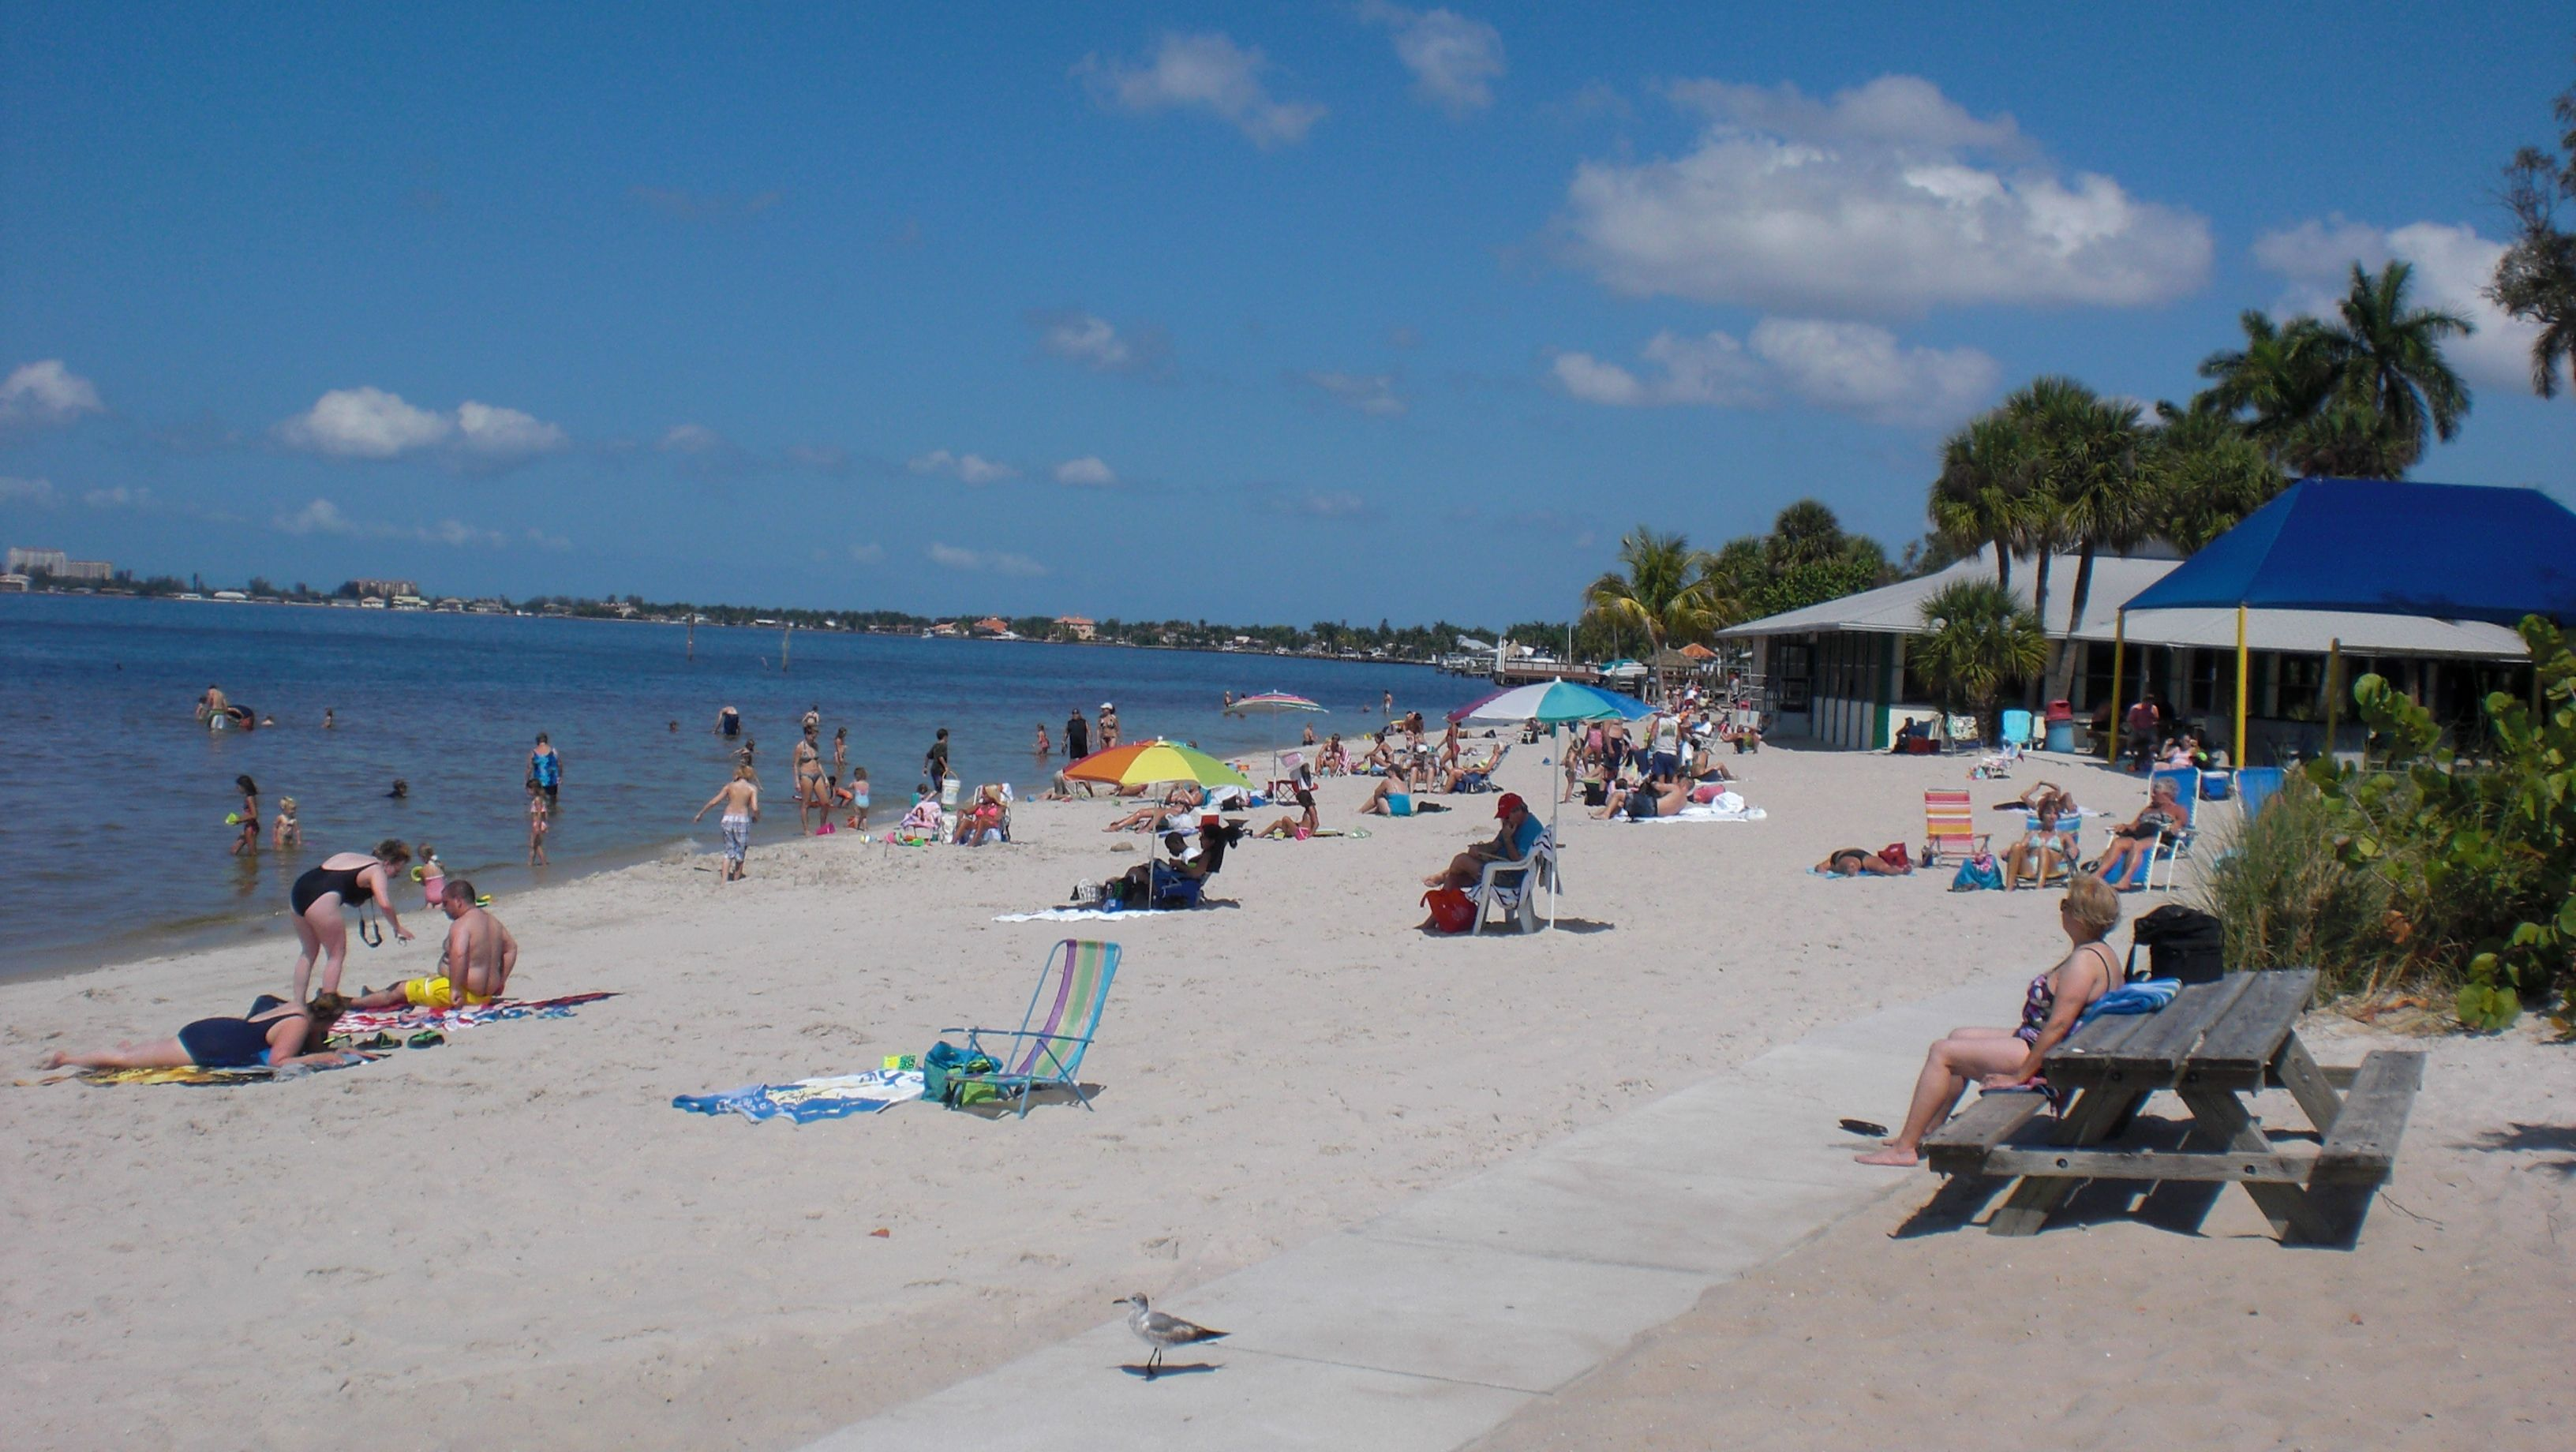 Cape Coral Real Estate Listings Fort Myers Beach Cape Coral Real Estate Cape Coral Yacht Club